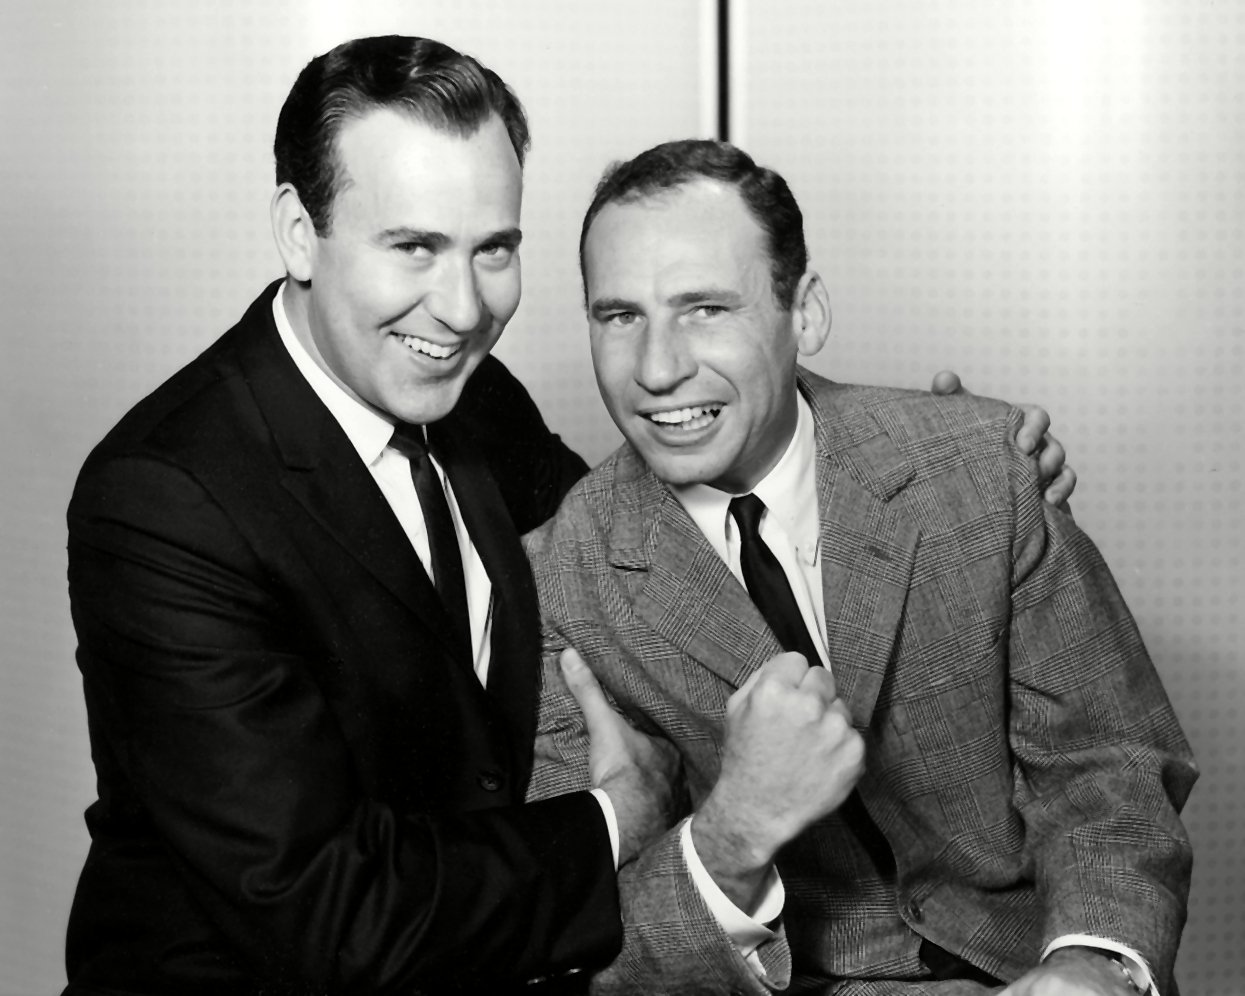 CARL REINER & MEL BROOKS LEGENDARY COMIC ACTORS & WRITERS - 8X10 PHOTO (AA-332)